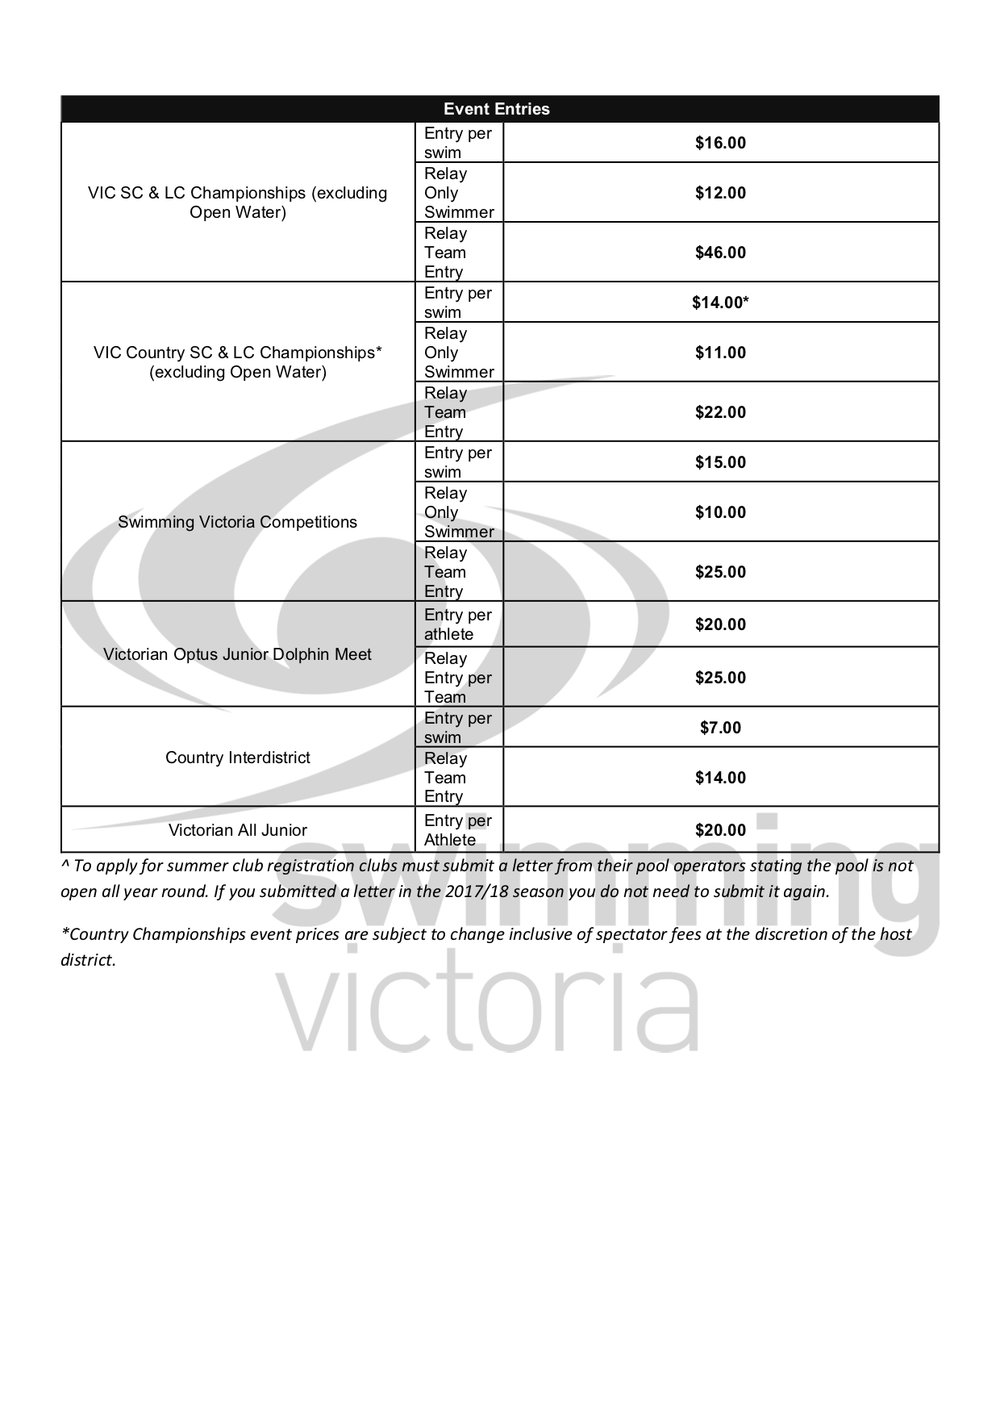 Schedule_of_Fees_18_19_FINAL pg2.jpg